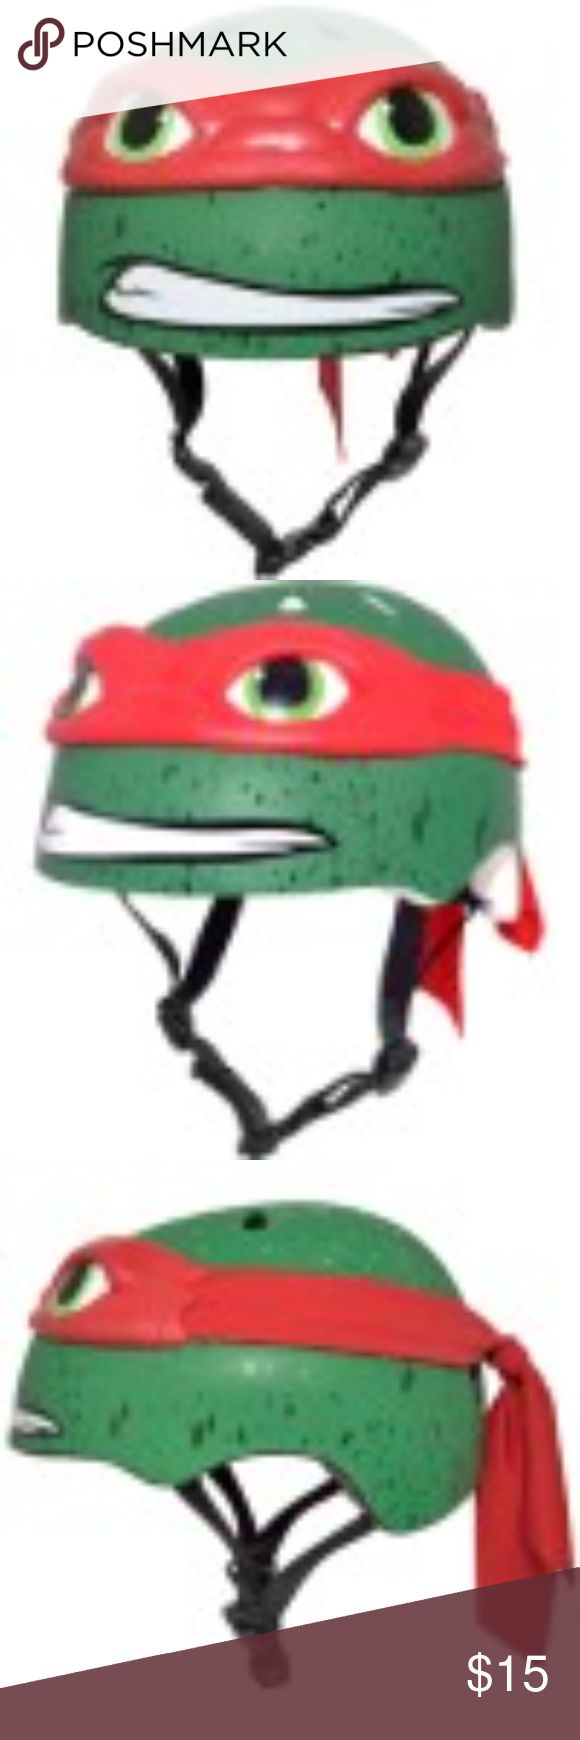 Nickelodeon Teenage Mutant Ninja Turtles Gender Male  Brand Teenage Mutant Ninja Turtles Sport Bicycling  Age Range 5 to 8 Years  Age Group Child Assembled Product Weight 2.27 lb  Assembled Product Dimensions (L x W x H) 8.27 x 6.50 x 6.50 Inches- Raphael 3D Bike Helmet, Other